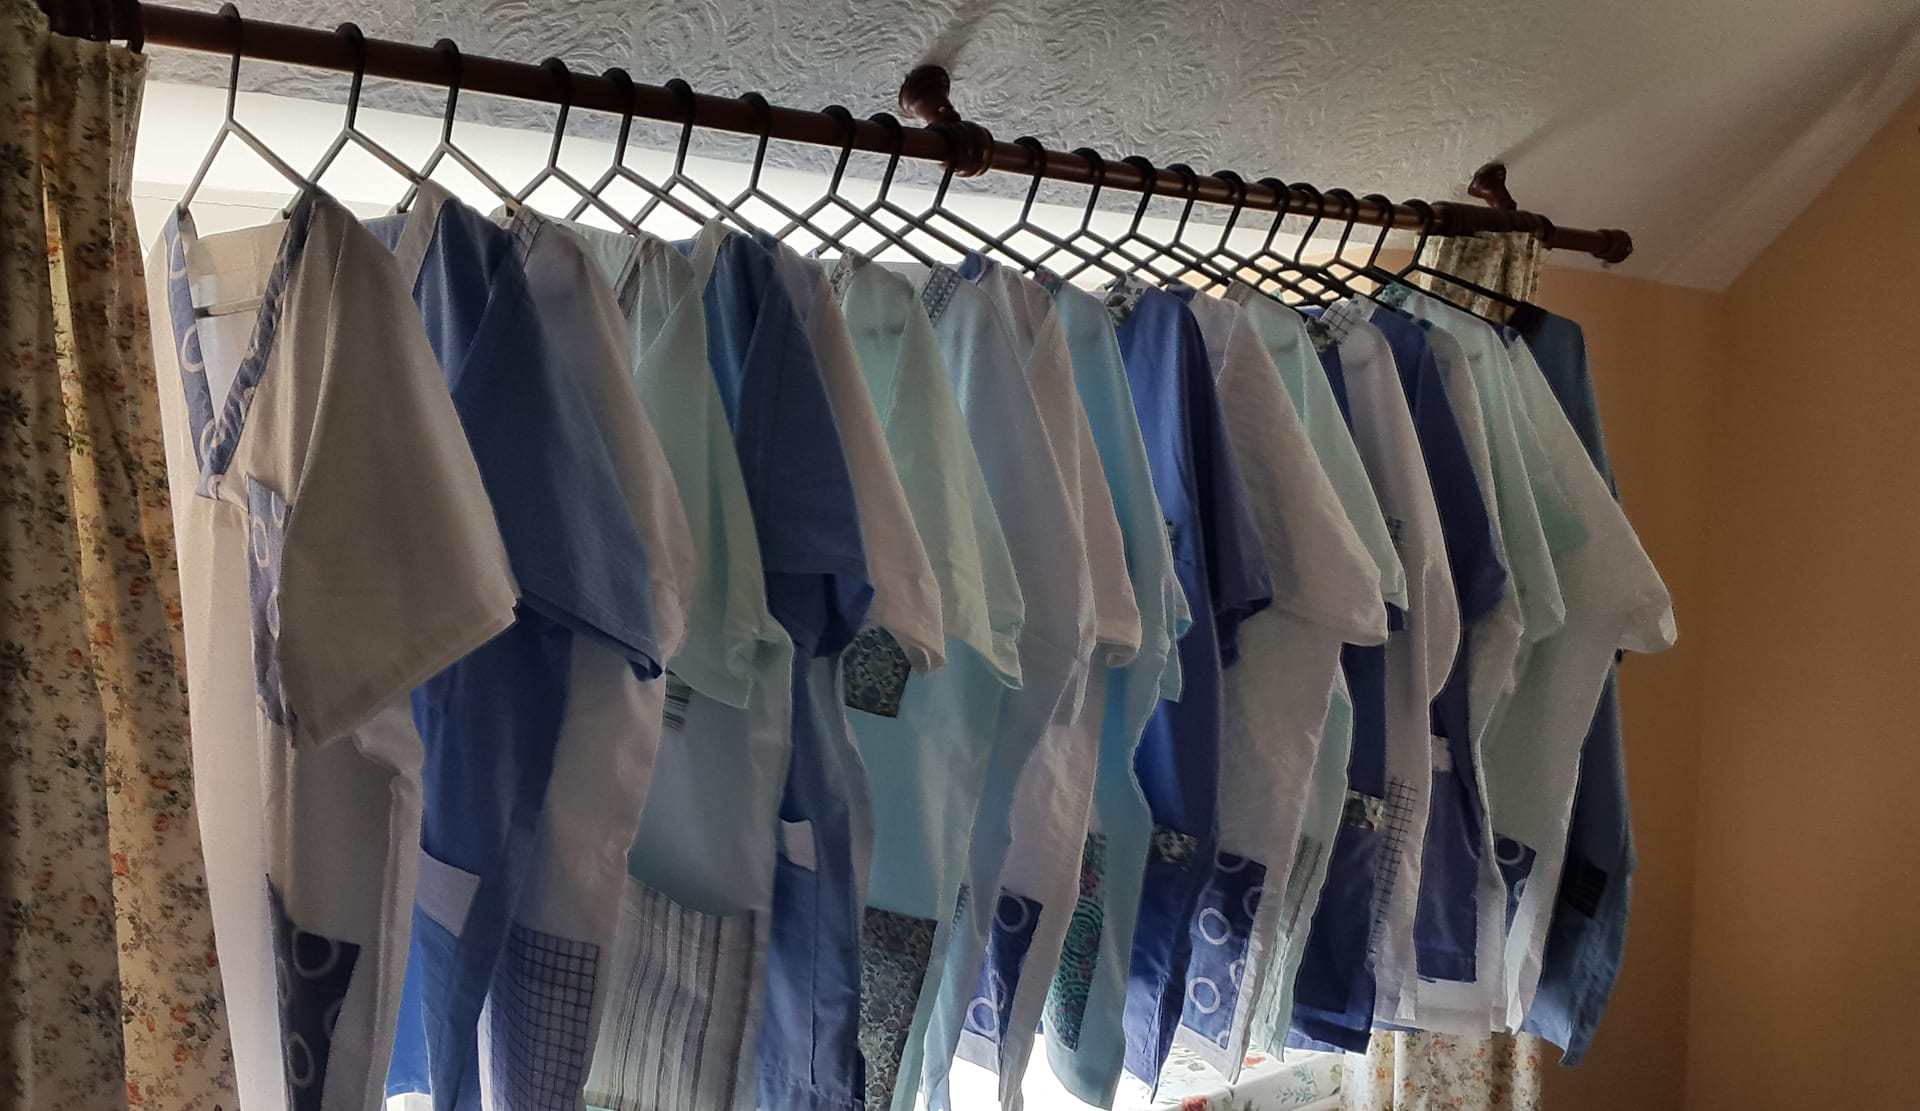 17 scrub tops made for Masson House Care Home